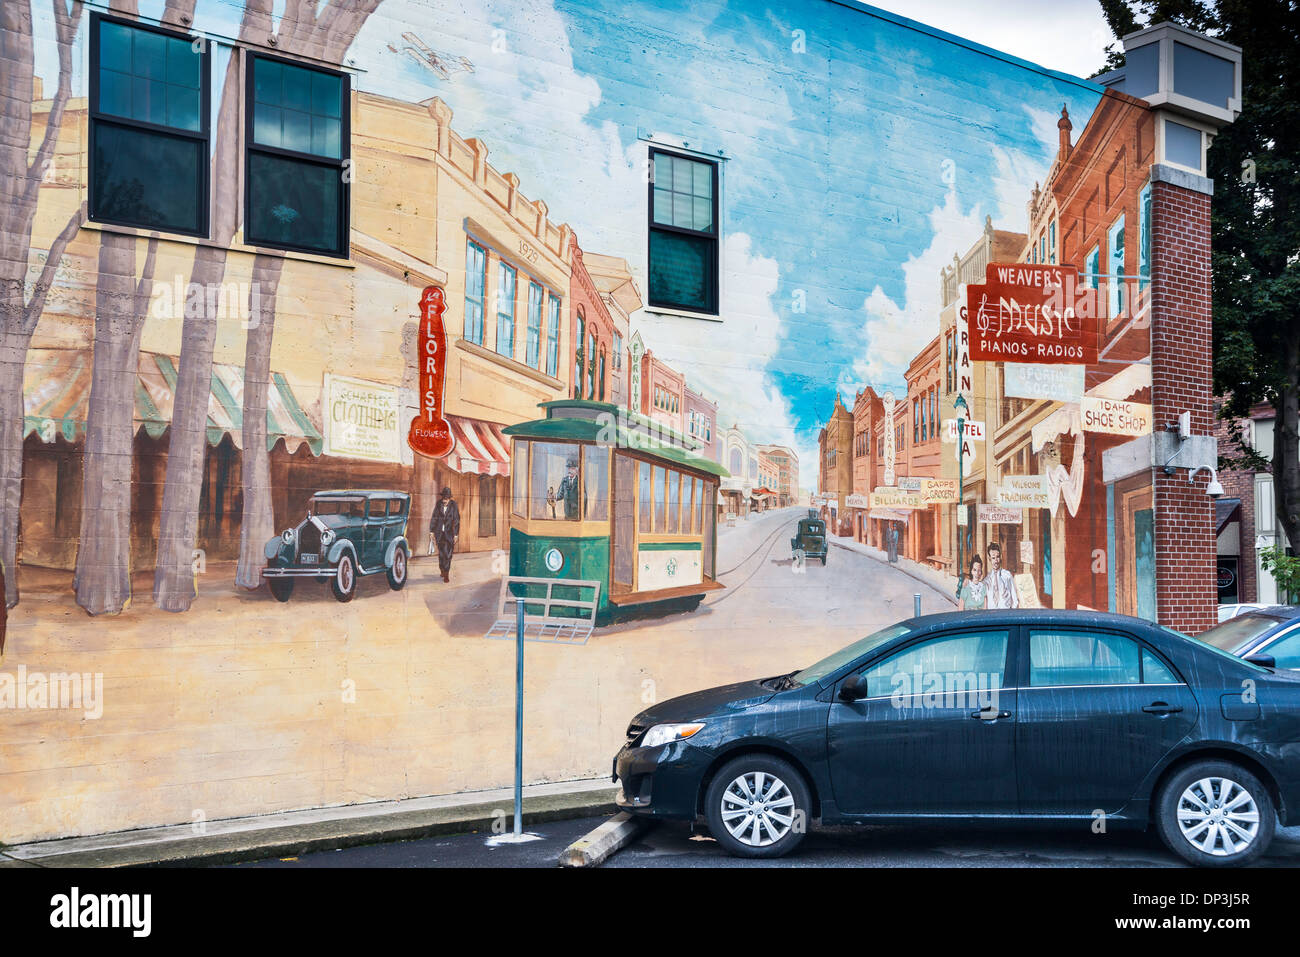 Modern car parked at mural by Peter Goetzinger, showing Main Street in 1930s, Lewiston, Idaho, USA - Stock Image